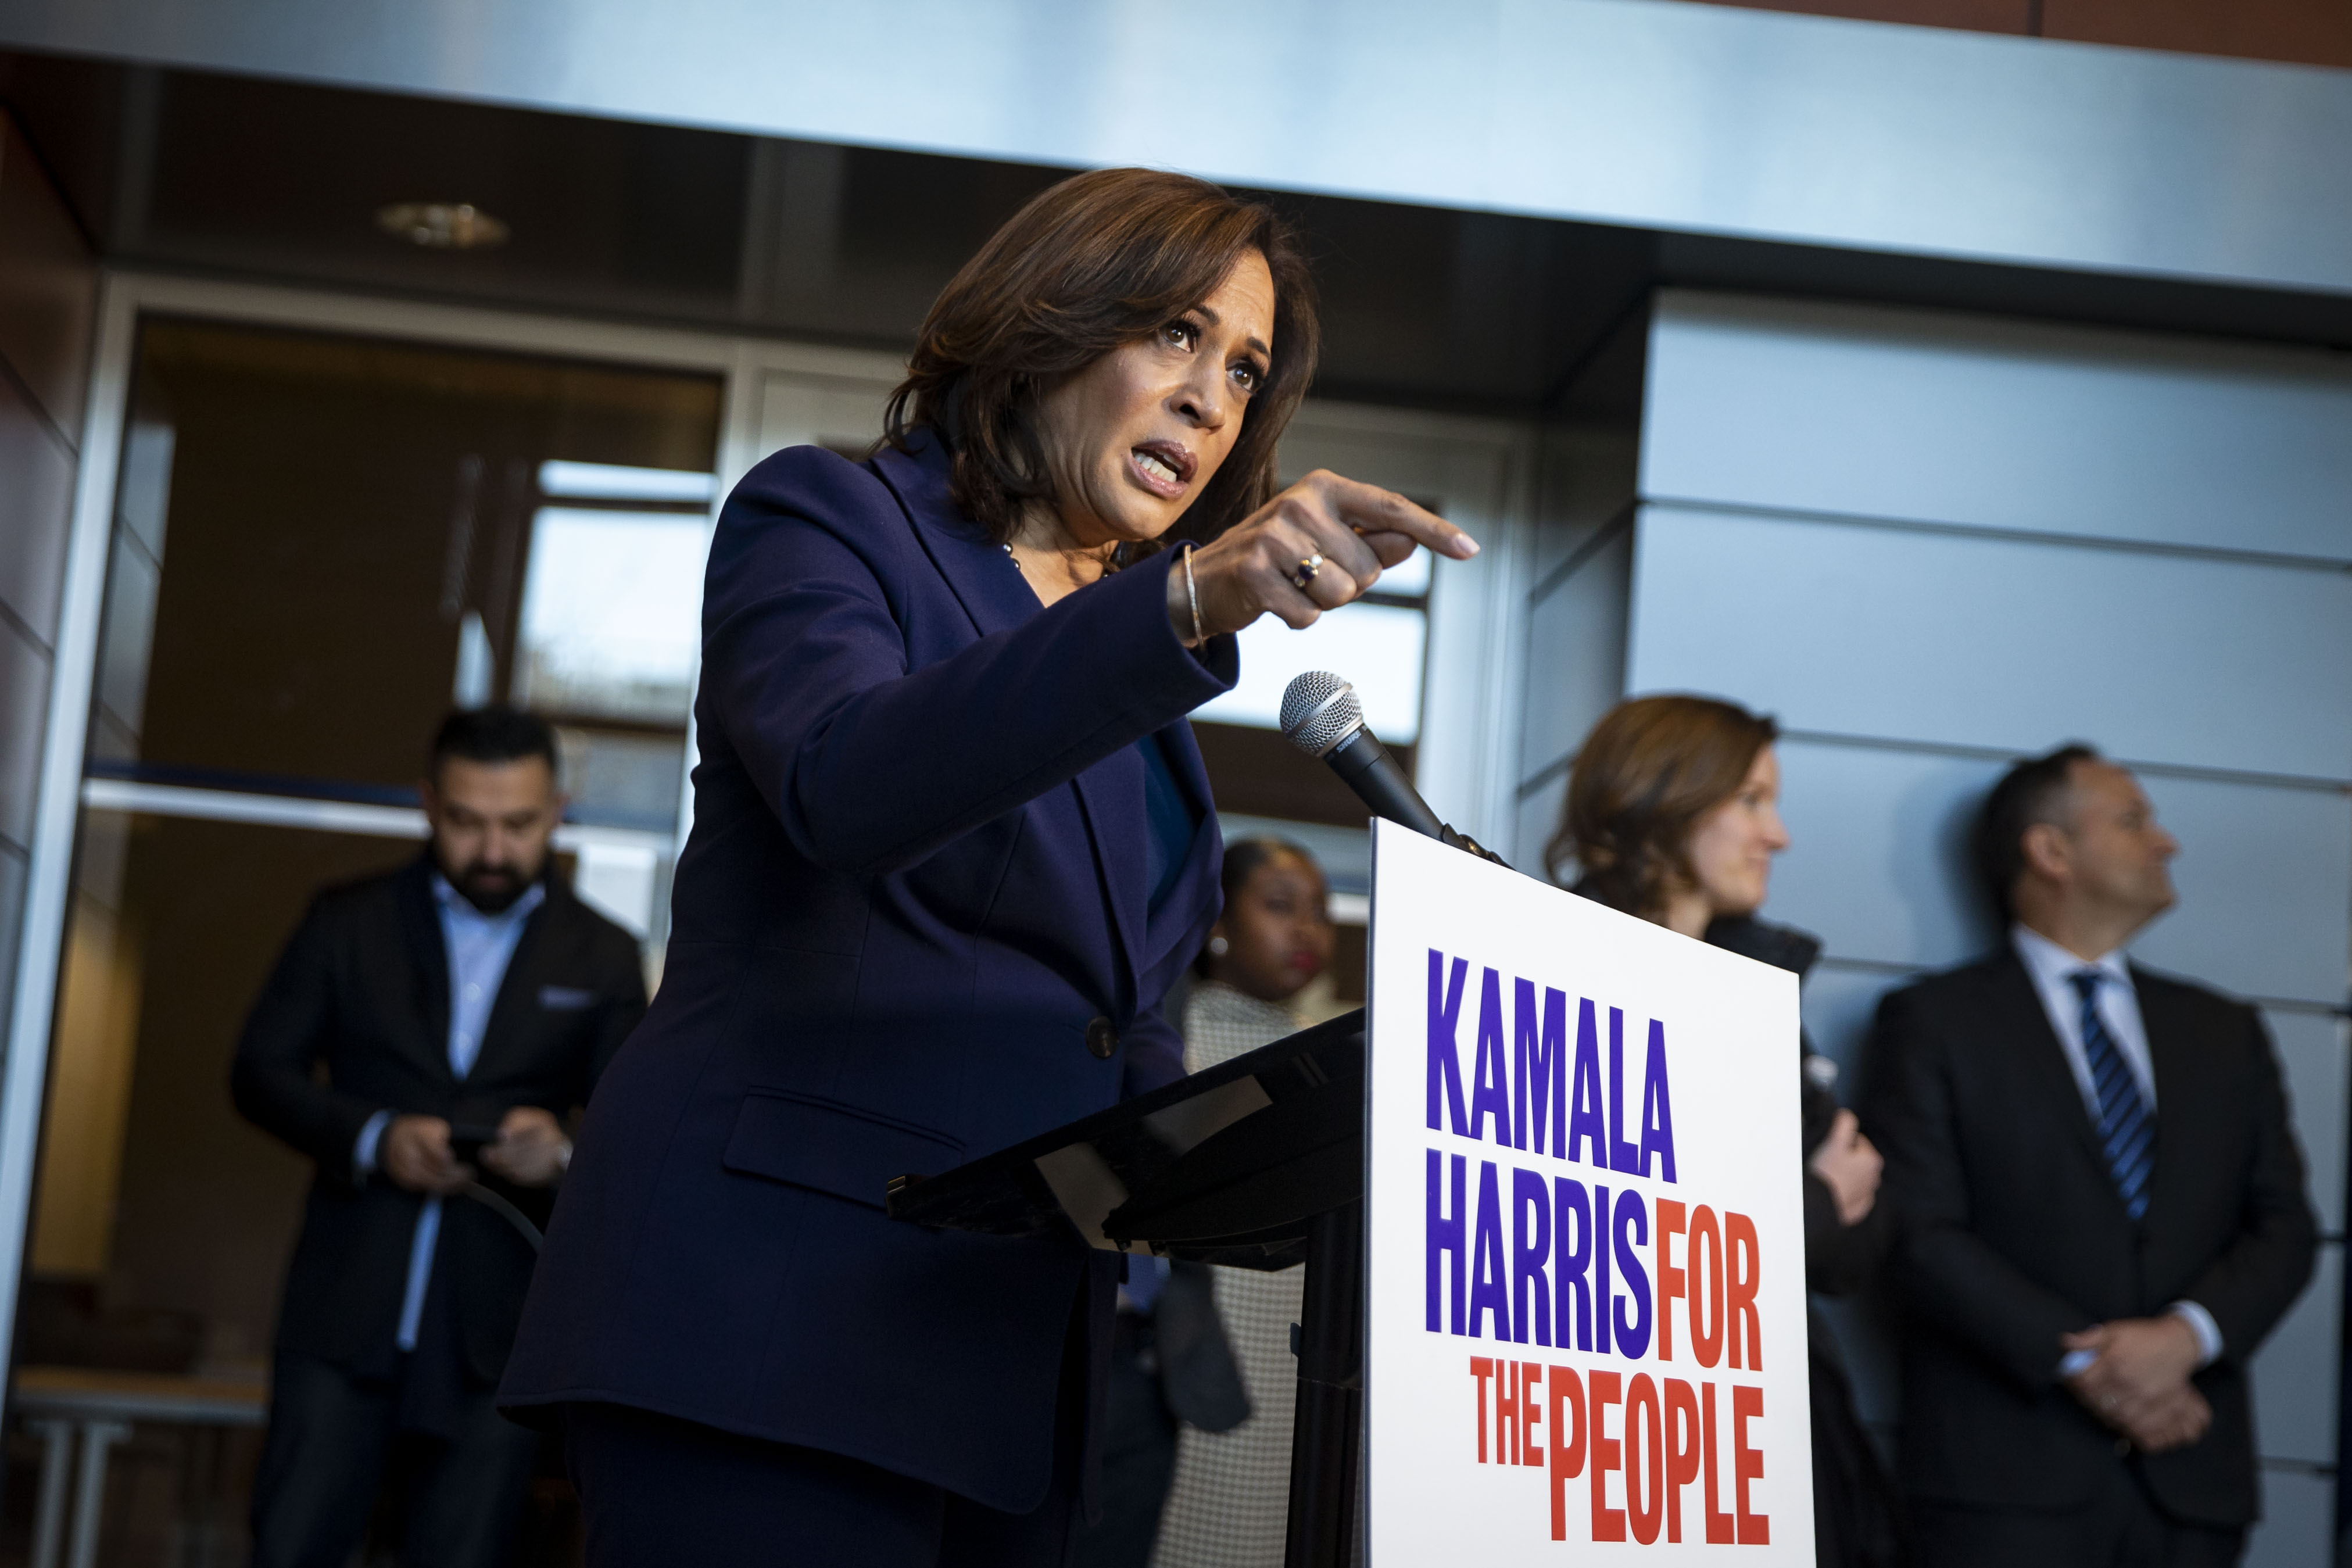 U.S. Sen. Kamala Harris speaks to reporters after announcing her candidacy for President of the United States, at Howard University, her alma mater, on January 21, 2019 in Washington, DC. (Photo by Al Drago/Getty Images)